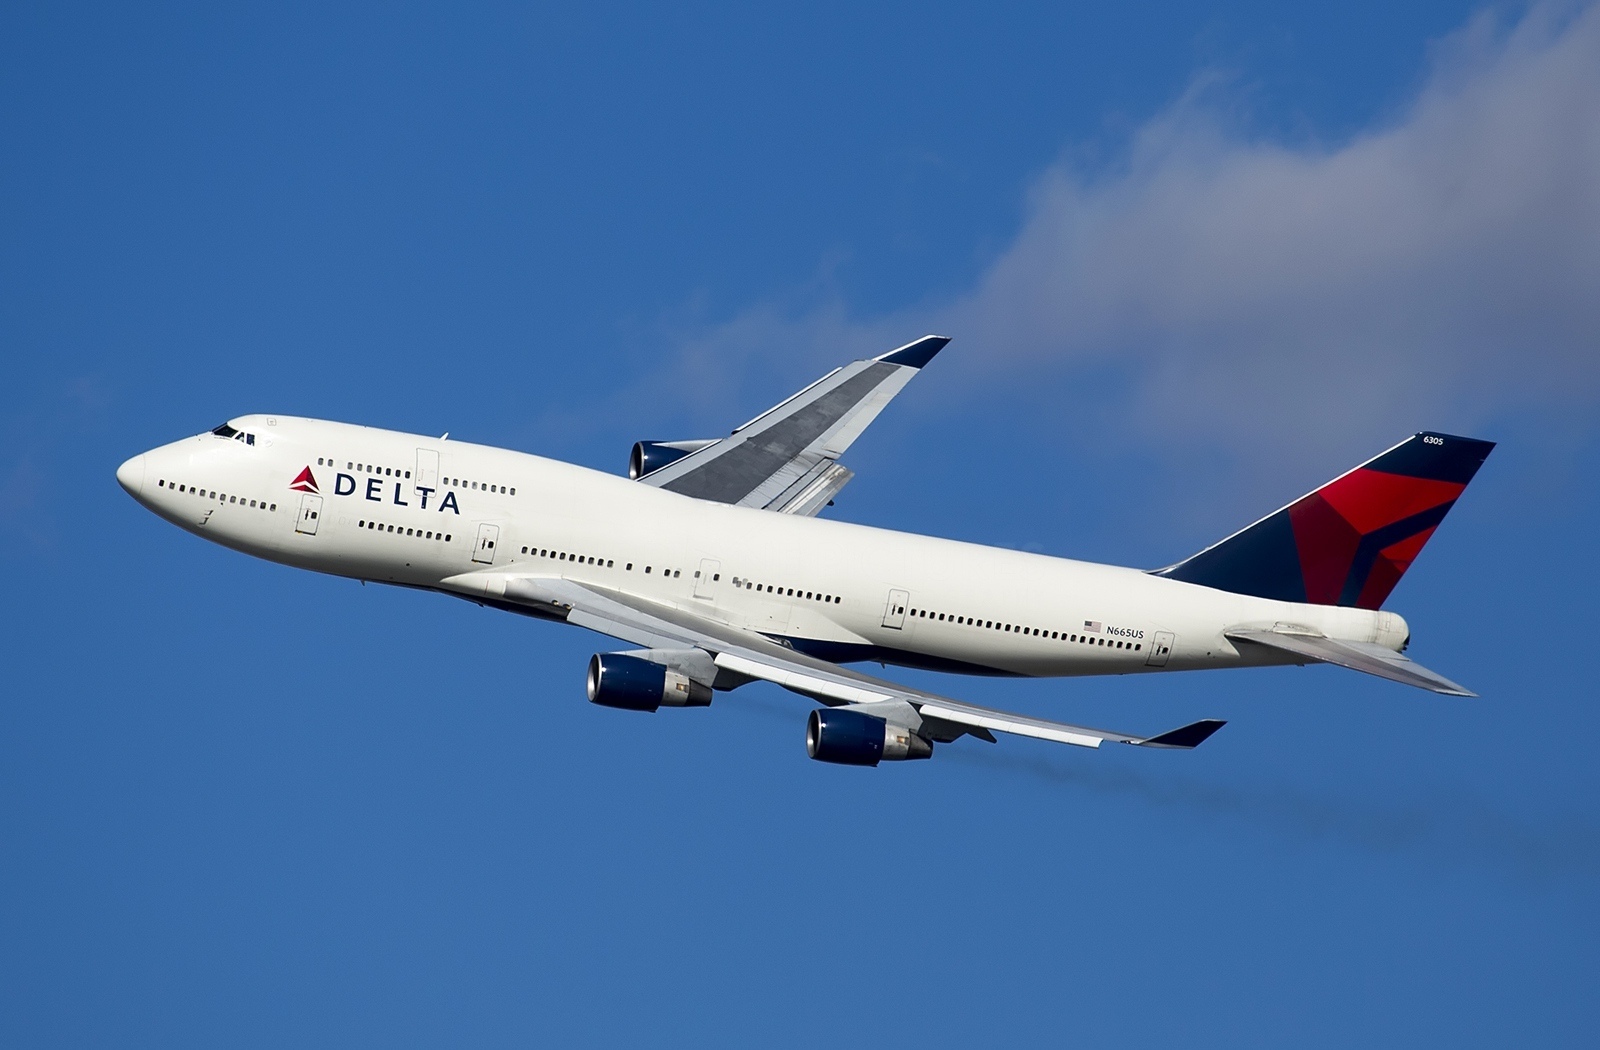 Boeing 747 400 Of Delta Airlines Inflight Aircraft